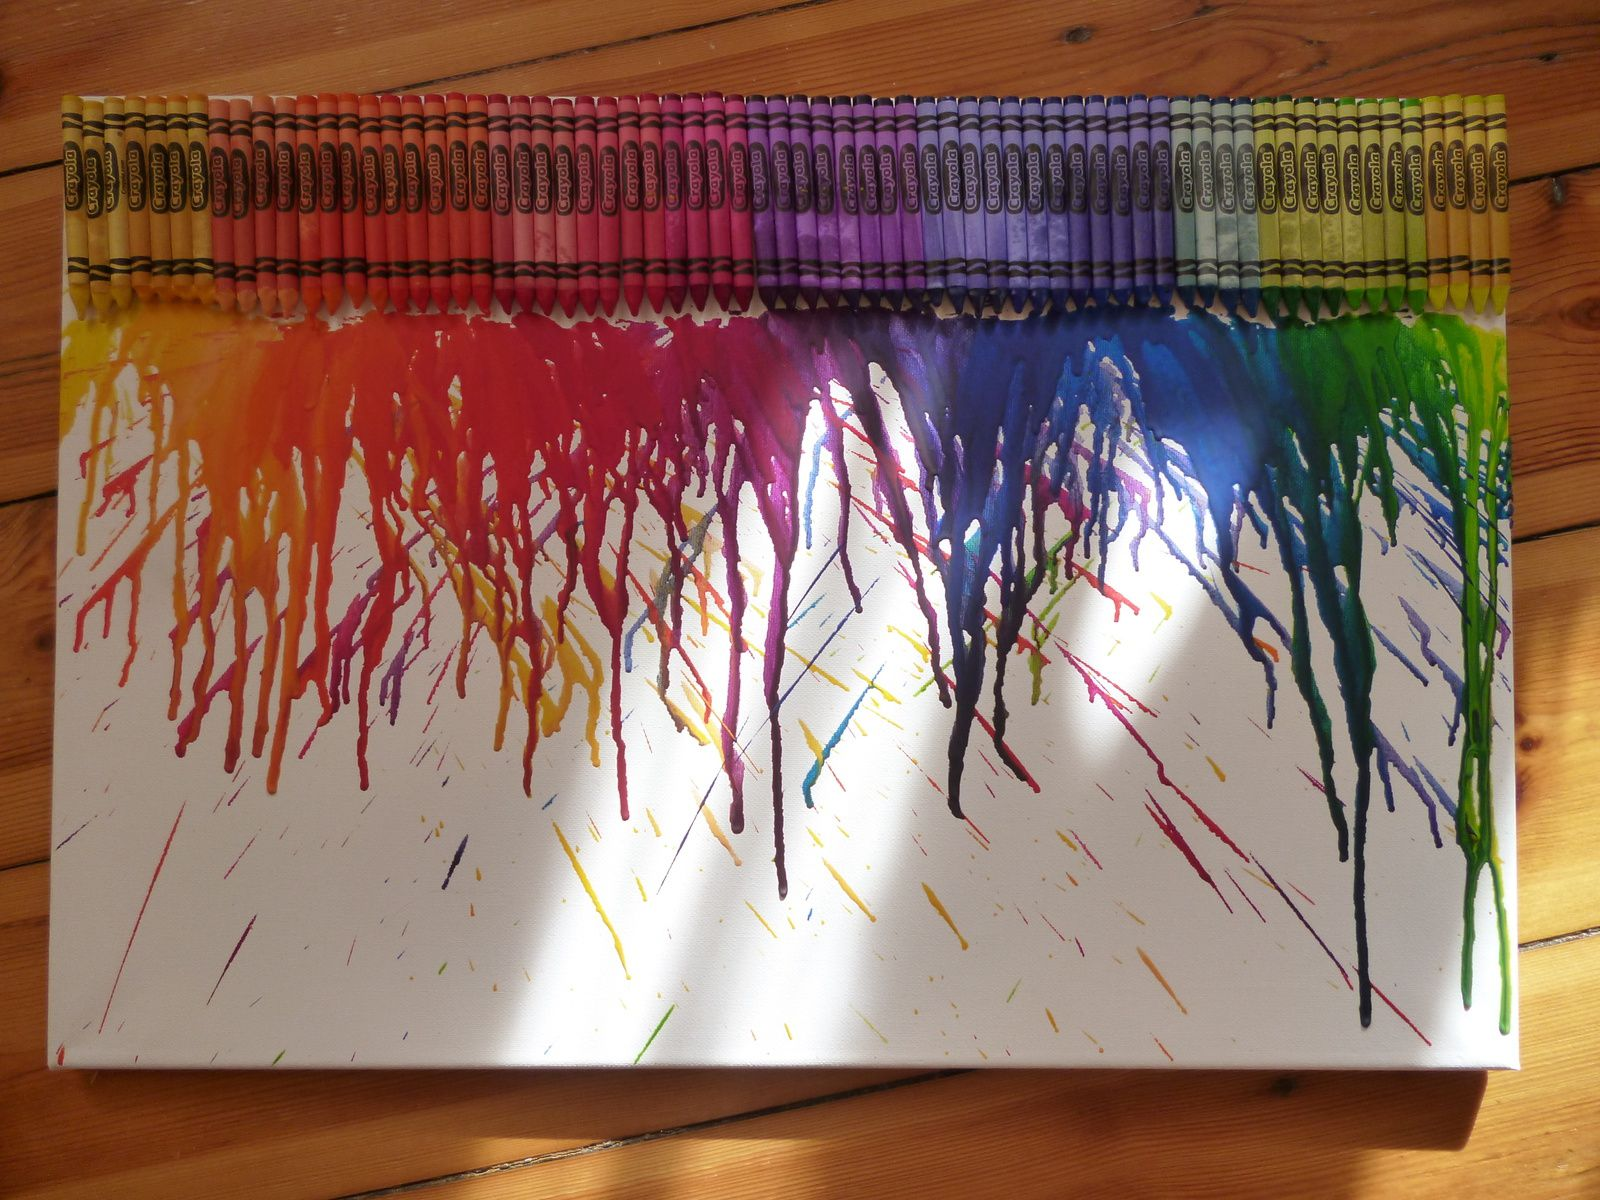 Melted Crayon DIY